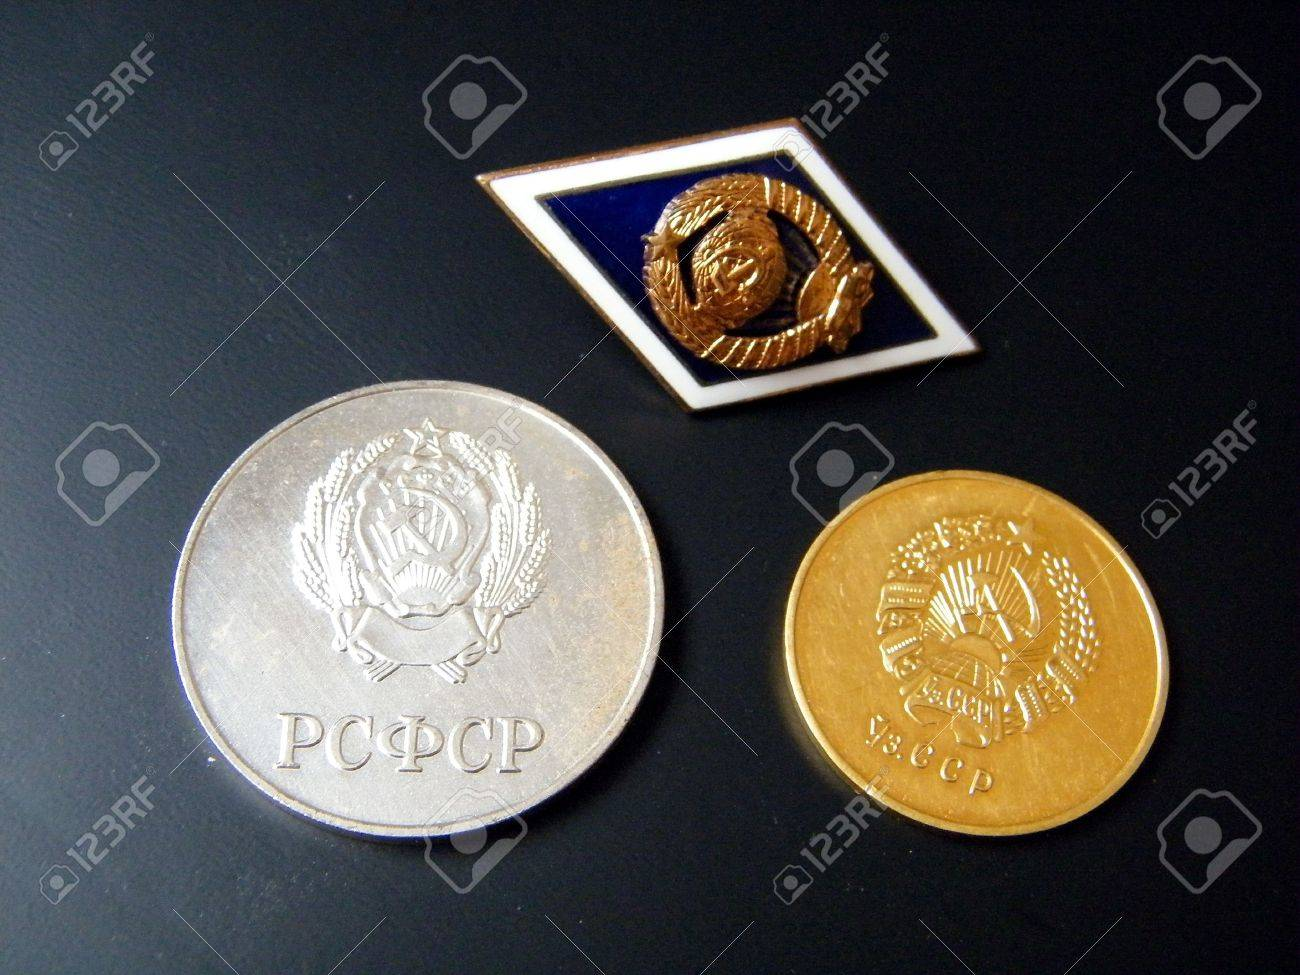 Gold uzbekistan and silver russia medals for excellent high gold uzbekistan and silver russia medals for excellent high school graduation in buycottarizona